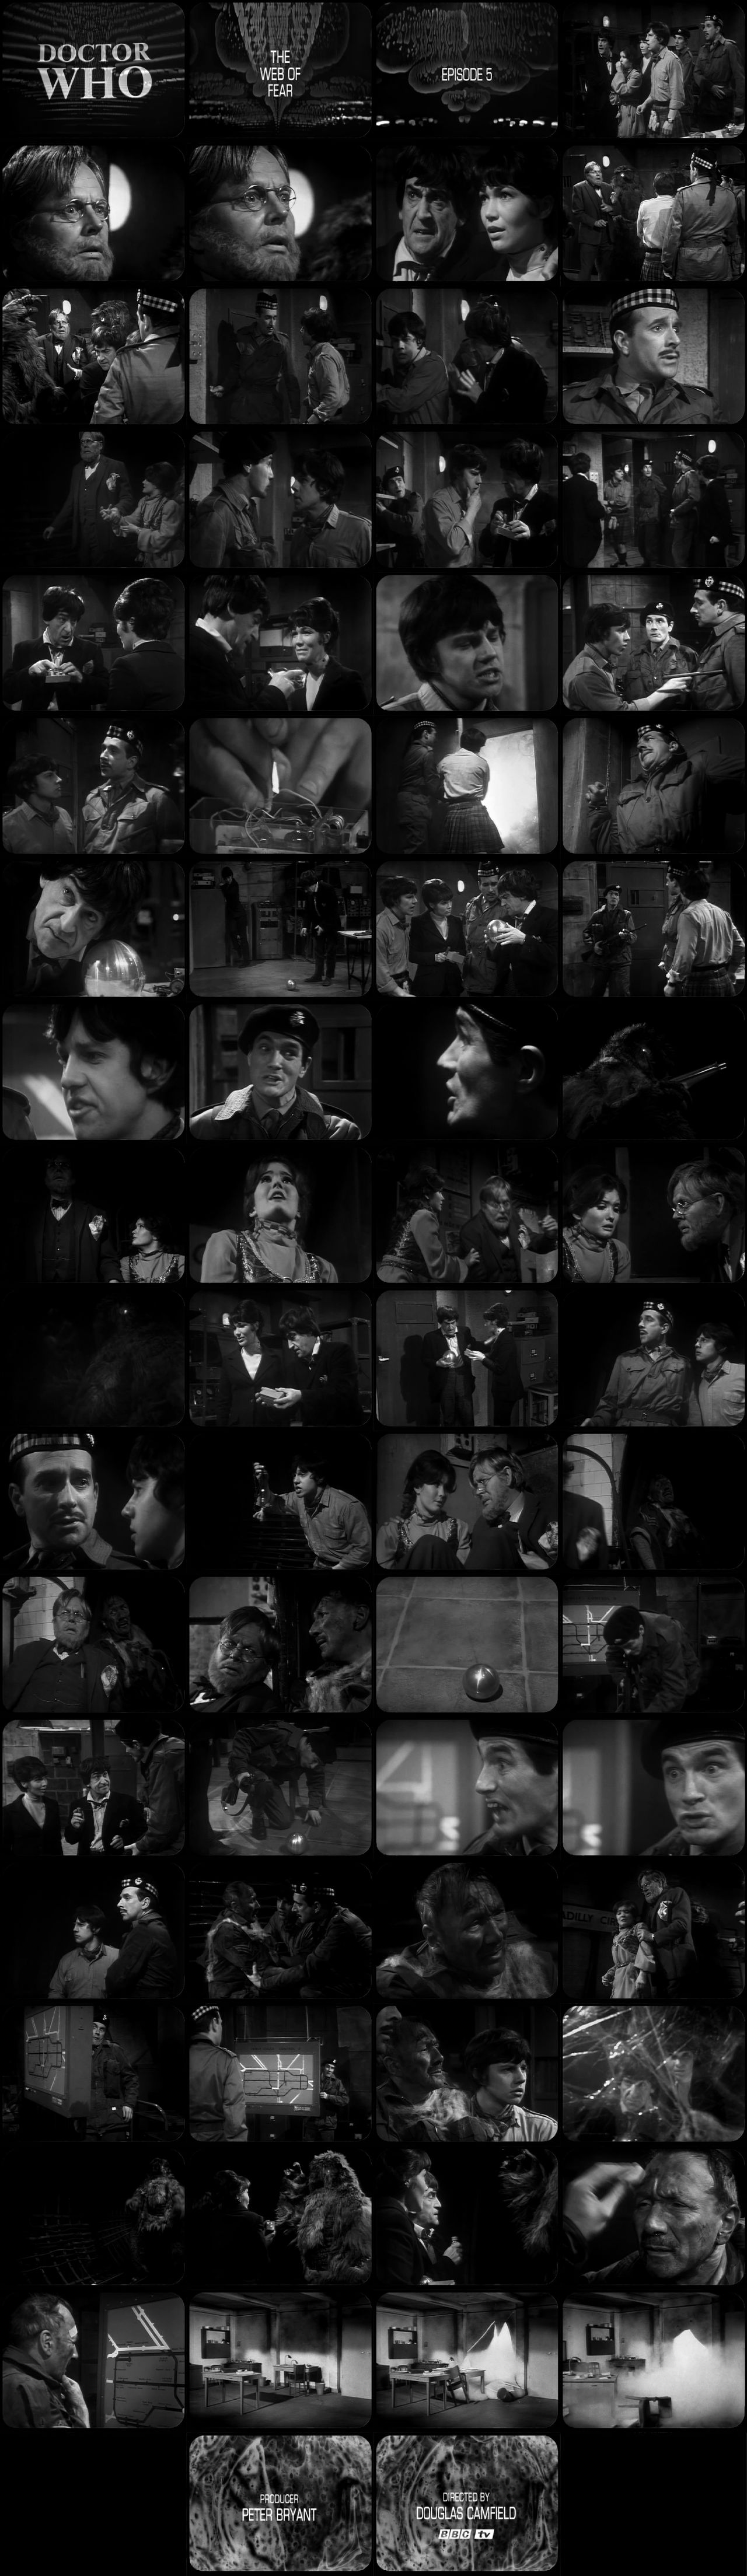 The Web of Fear Episode 5 Tele-Snaps